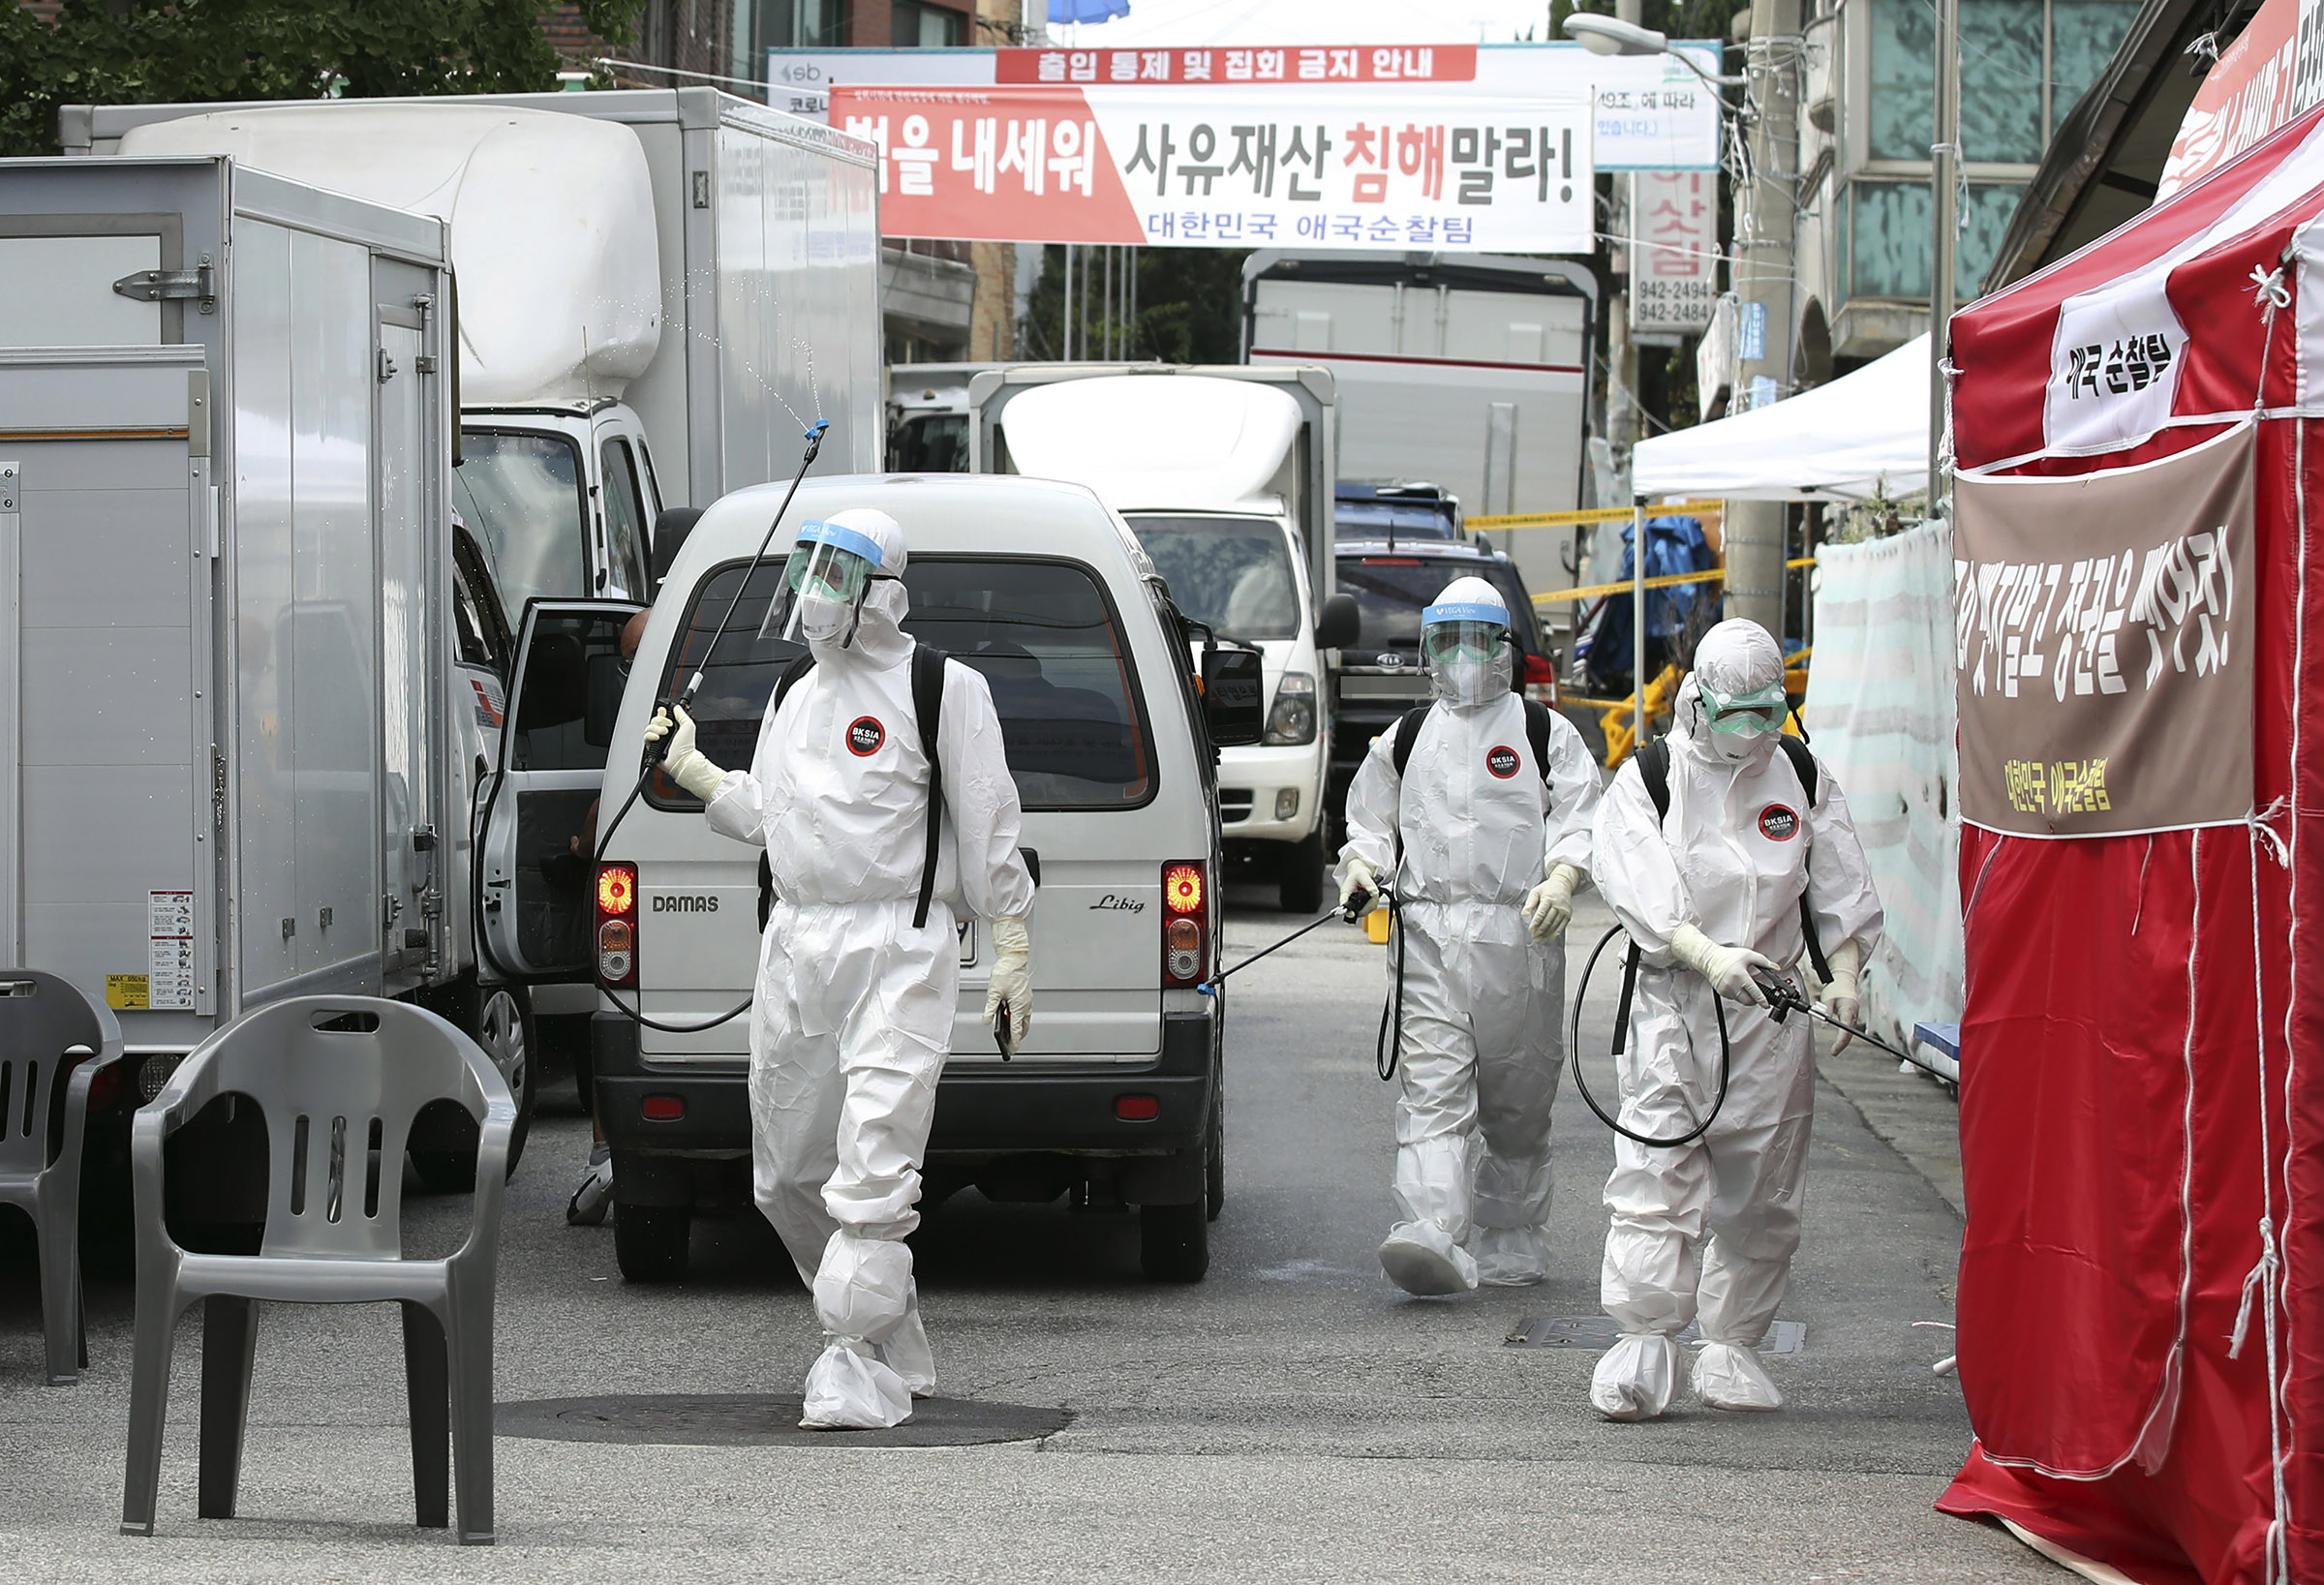 Public officials disinfect as a precaution against the coronavirus near the Sarang-jeil church in Seoul, South Korea on August 16.